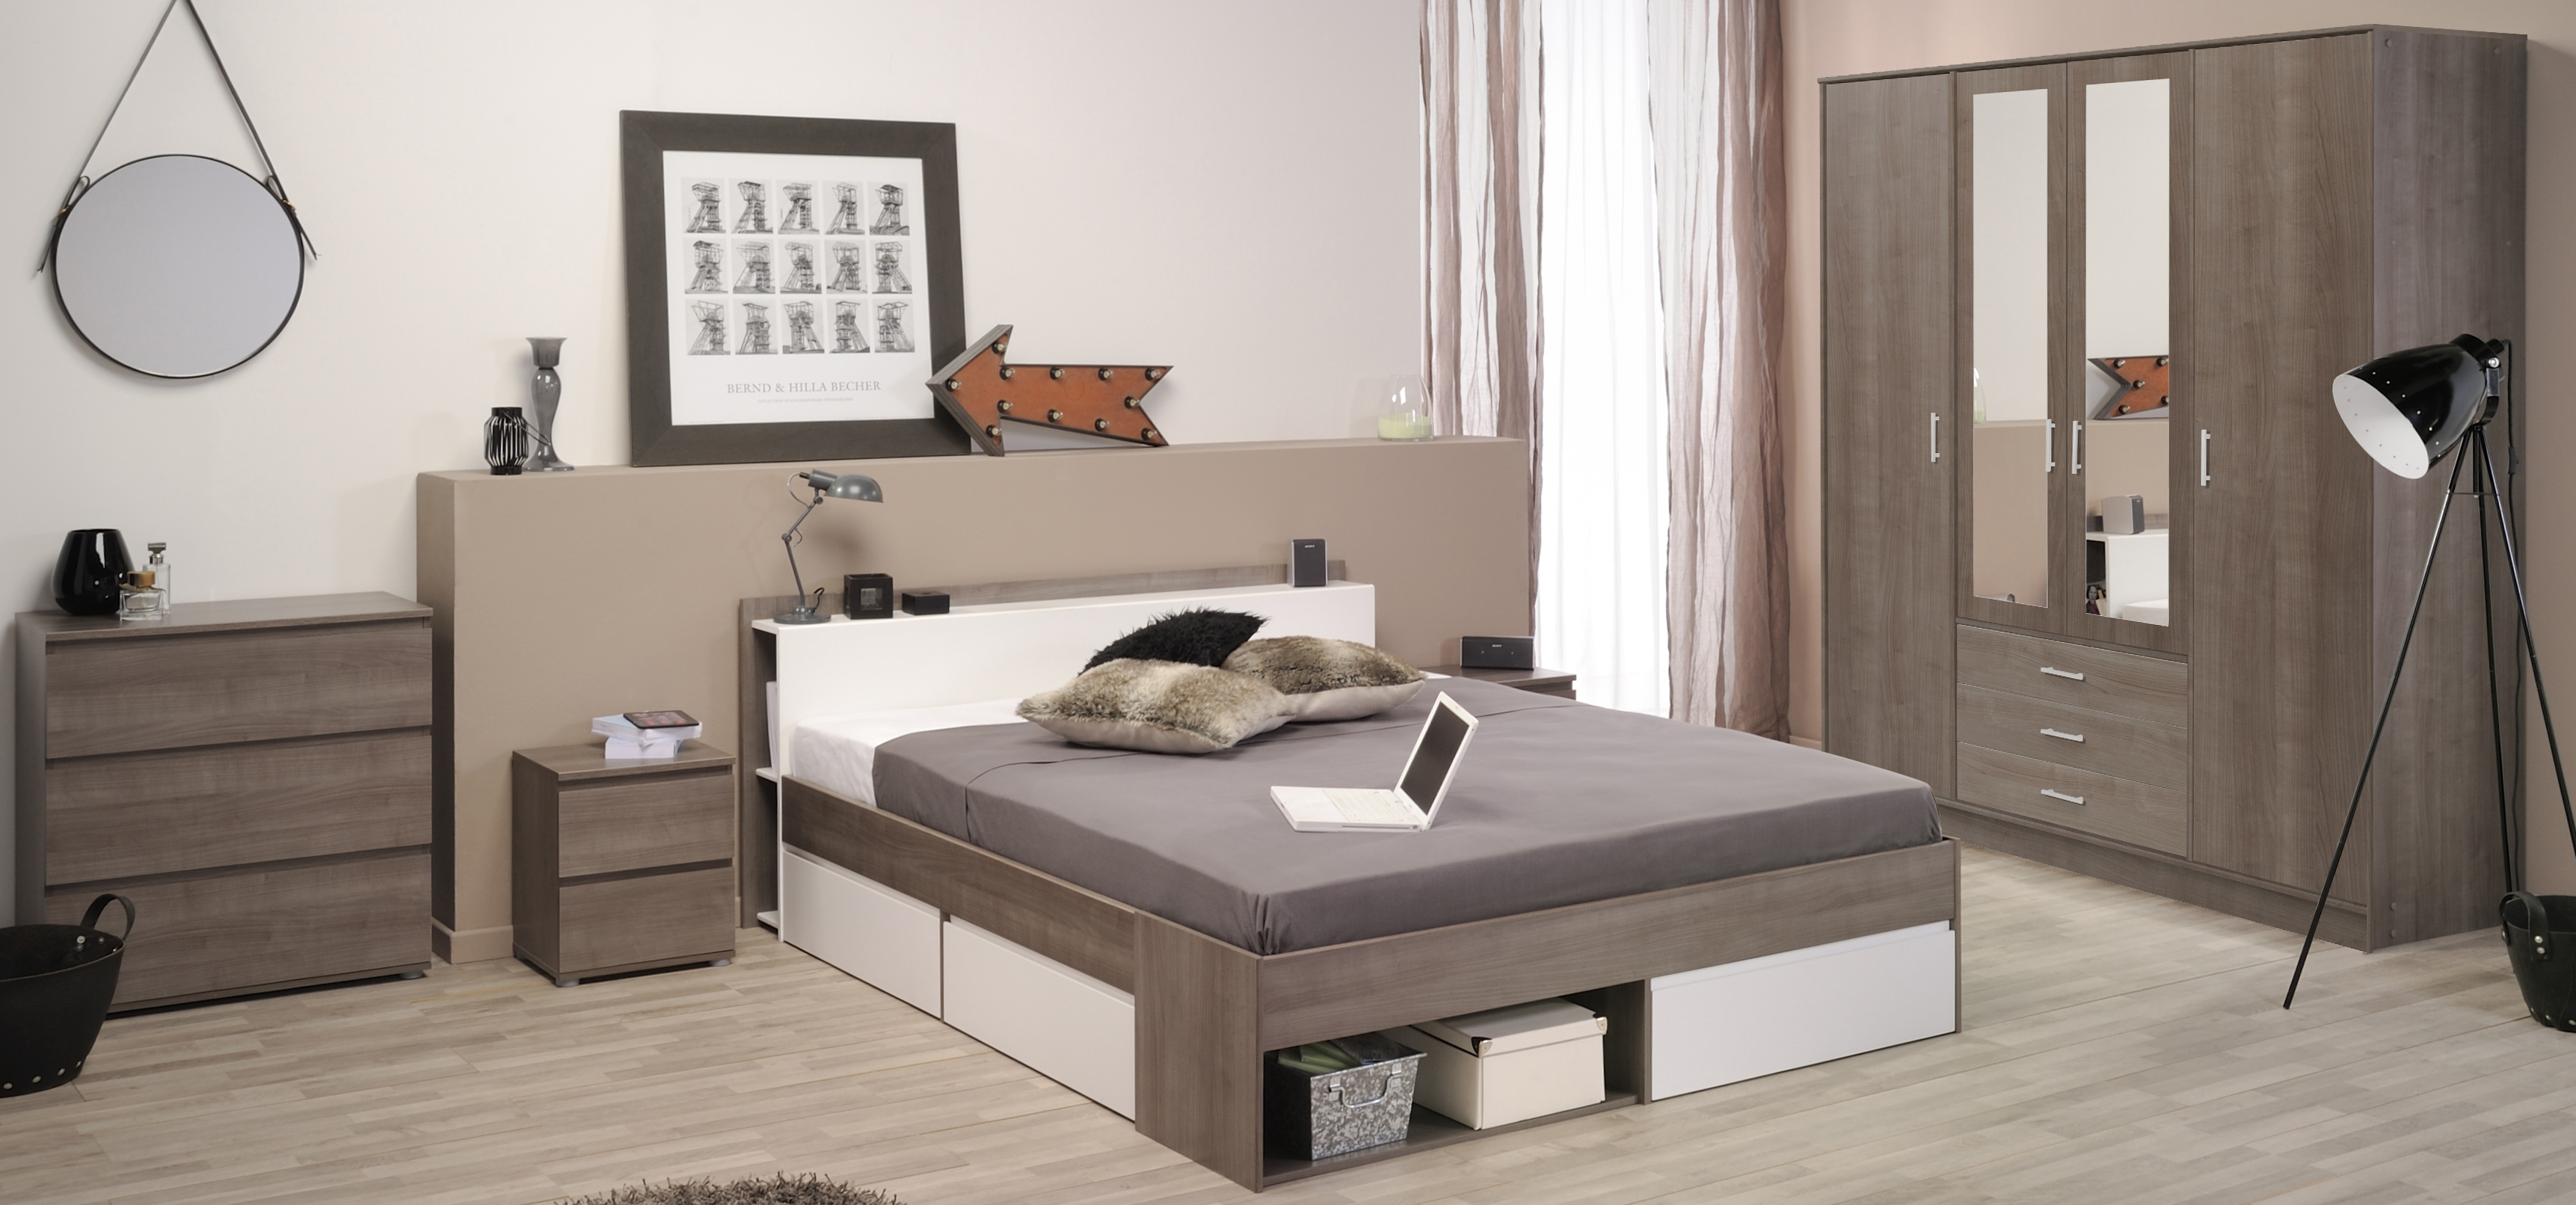 schlafzimmer 5 tlg inkl 160x200 bett u 4 trg kleiderderschrank most 42 von parisot eiche silber. Black Bedroom Furniture Sets. Home Design Ideas